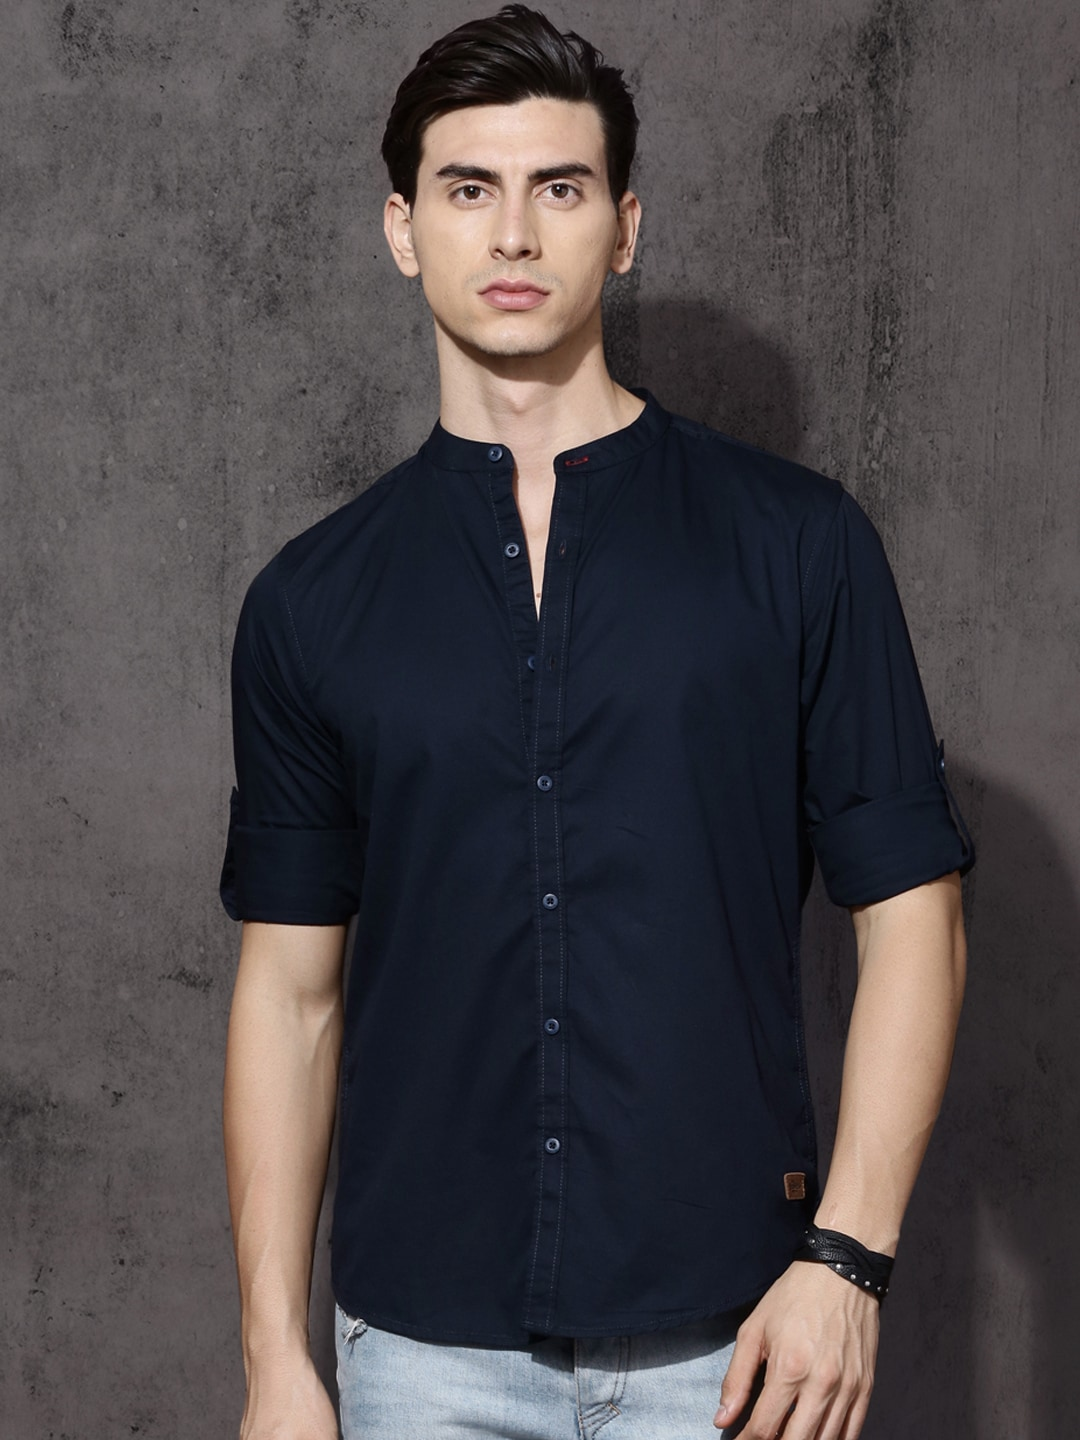 dcd8299f24 Navy Blue Blue Solid Shirt - Buy Navy Blue Blue Solid Shirt online in India